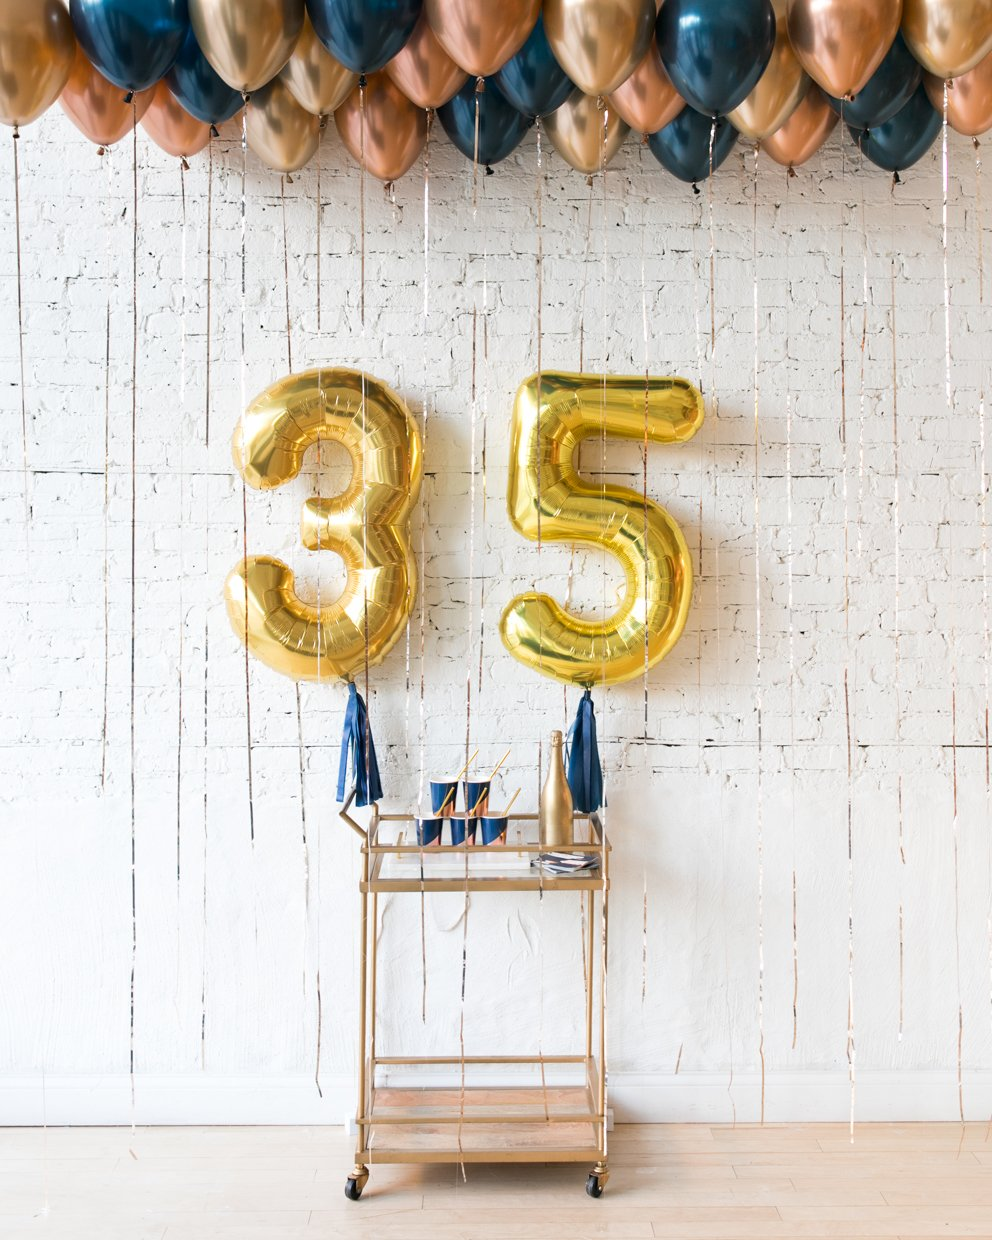 Midnight Copper - Custom Foil Numbers & Ceiling balloon set